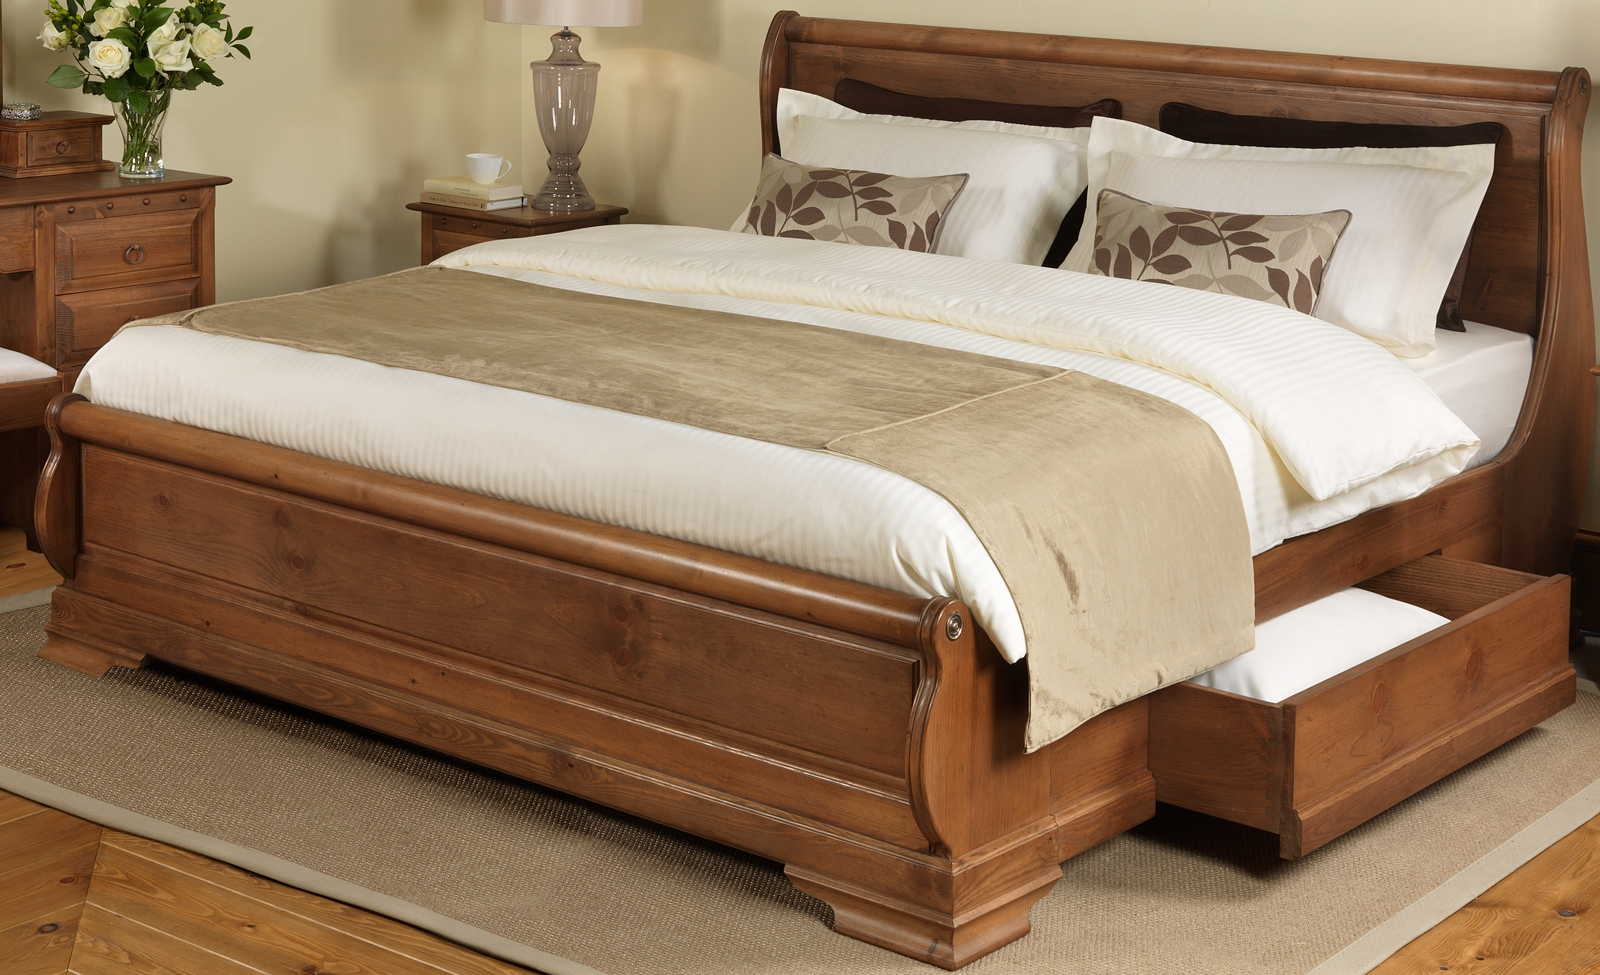 Wood Bed Frame With Storage Drawers